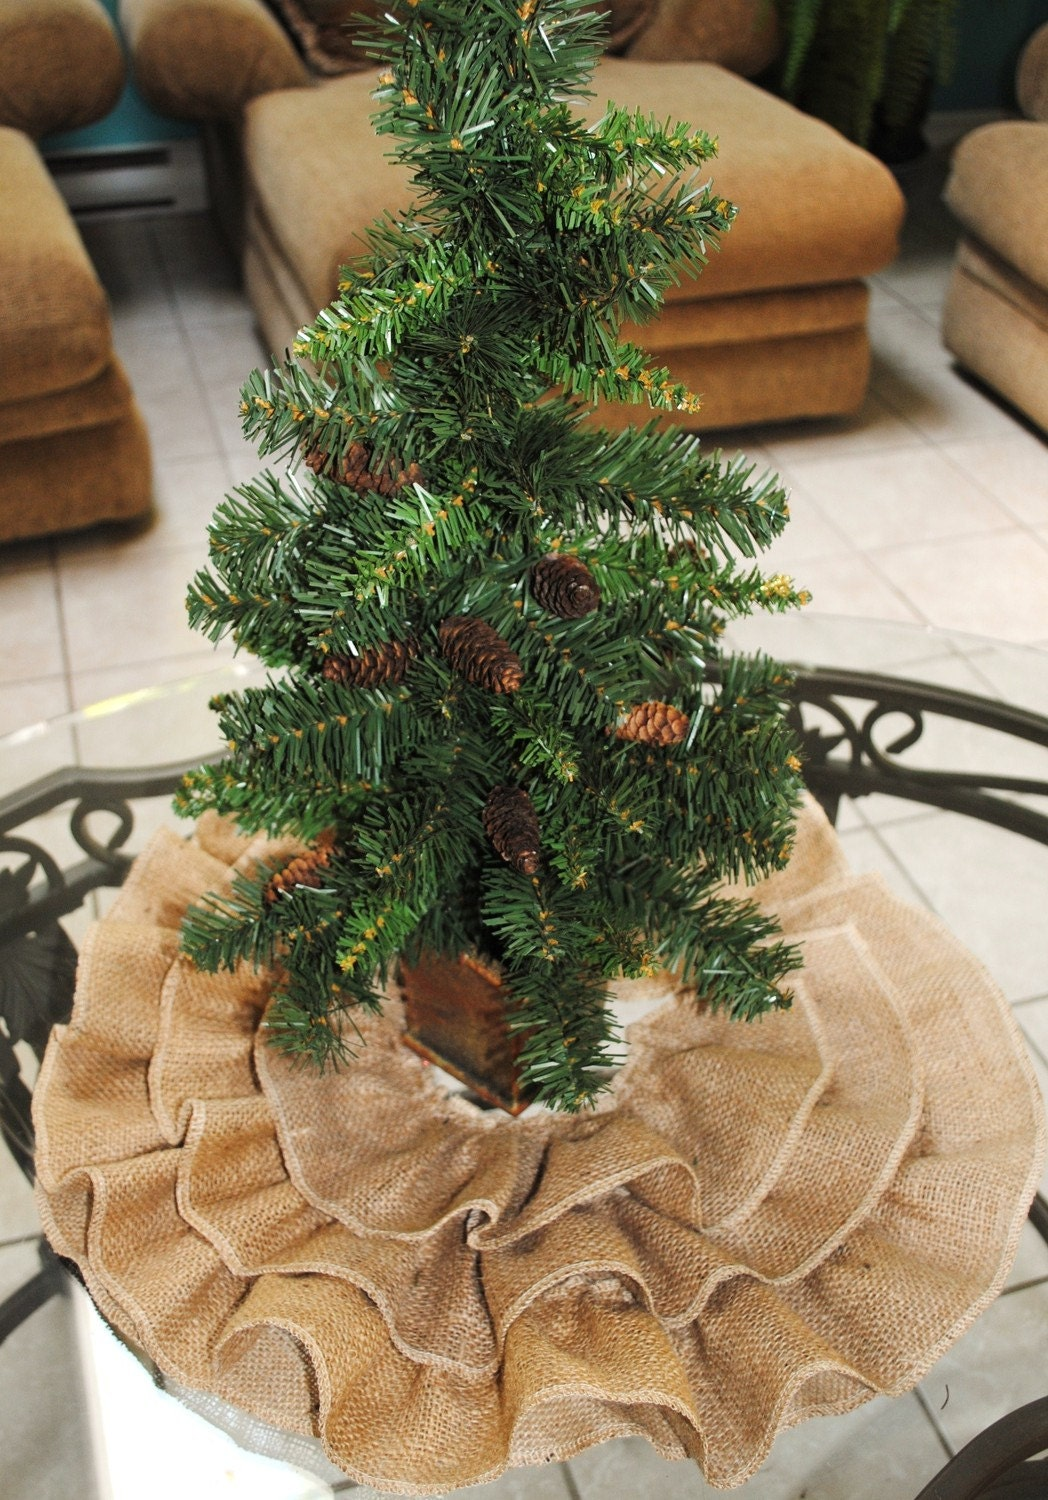 Burlap Ruffled Mini Tree Skirt by PaulaAndErika on Etsy